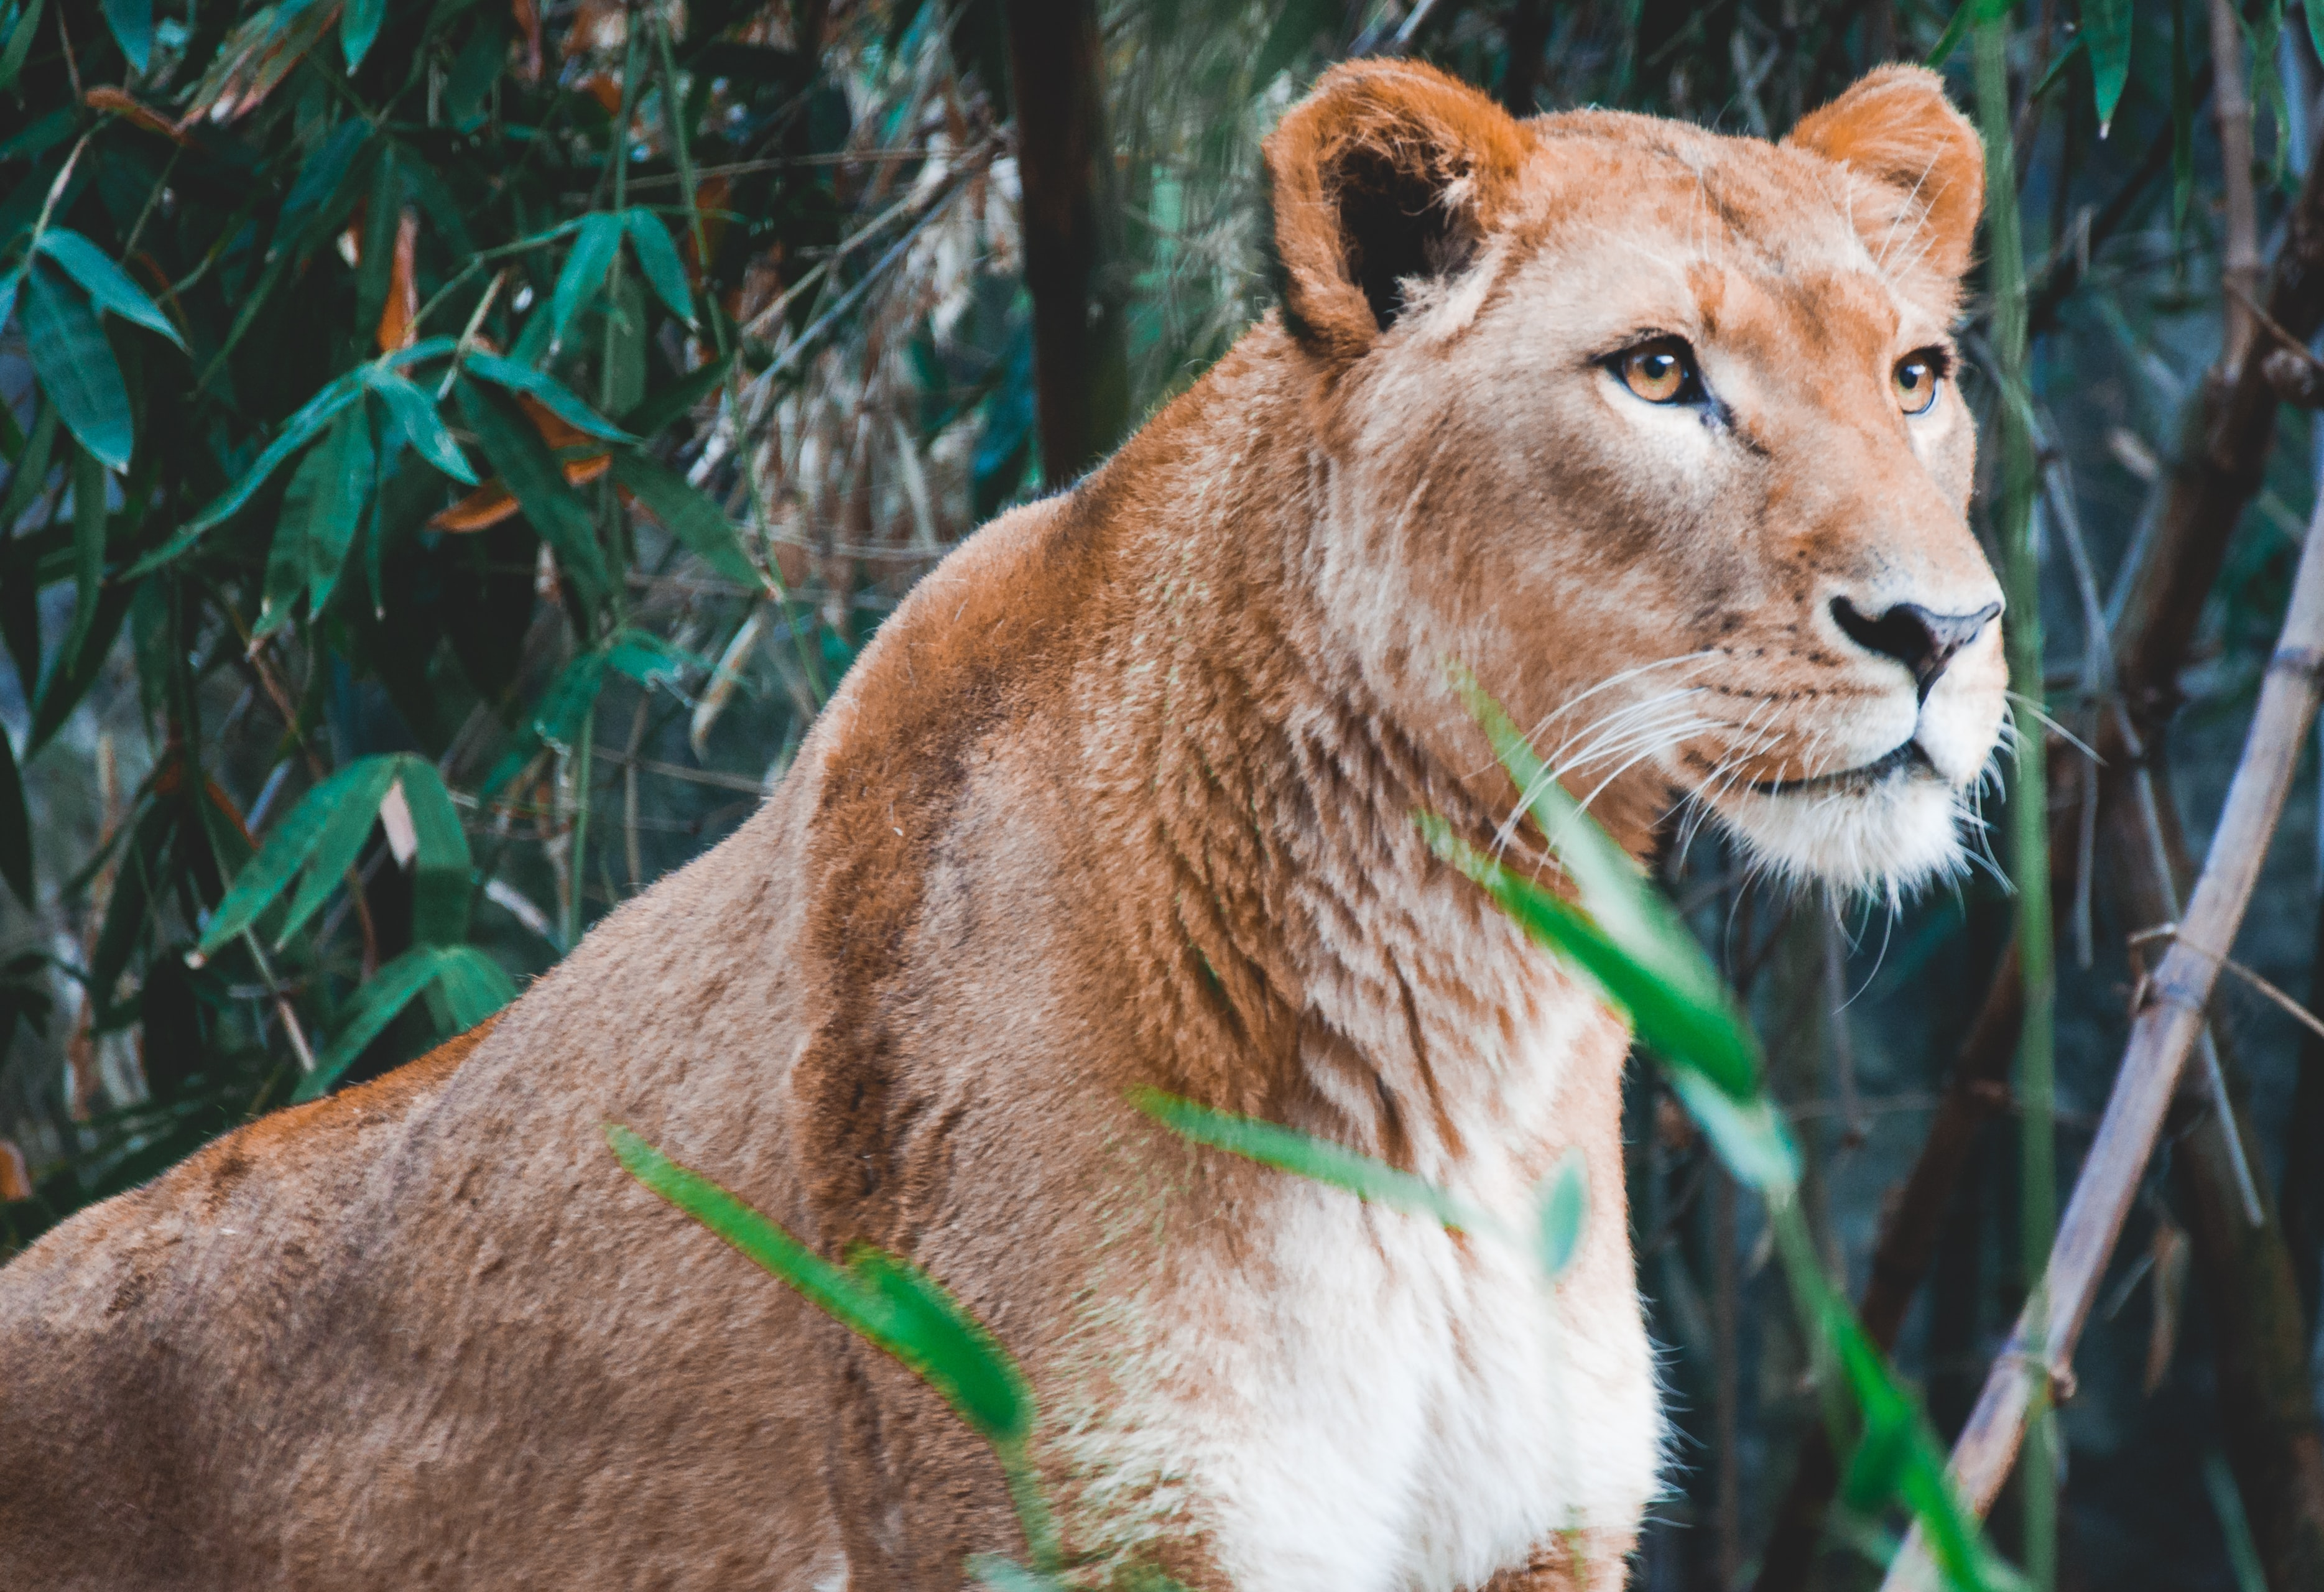 lioness near bamboo plant